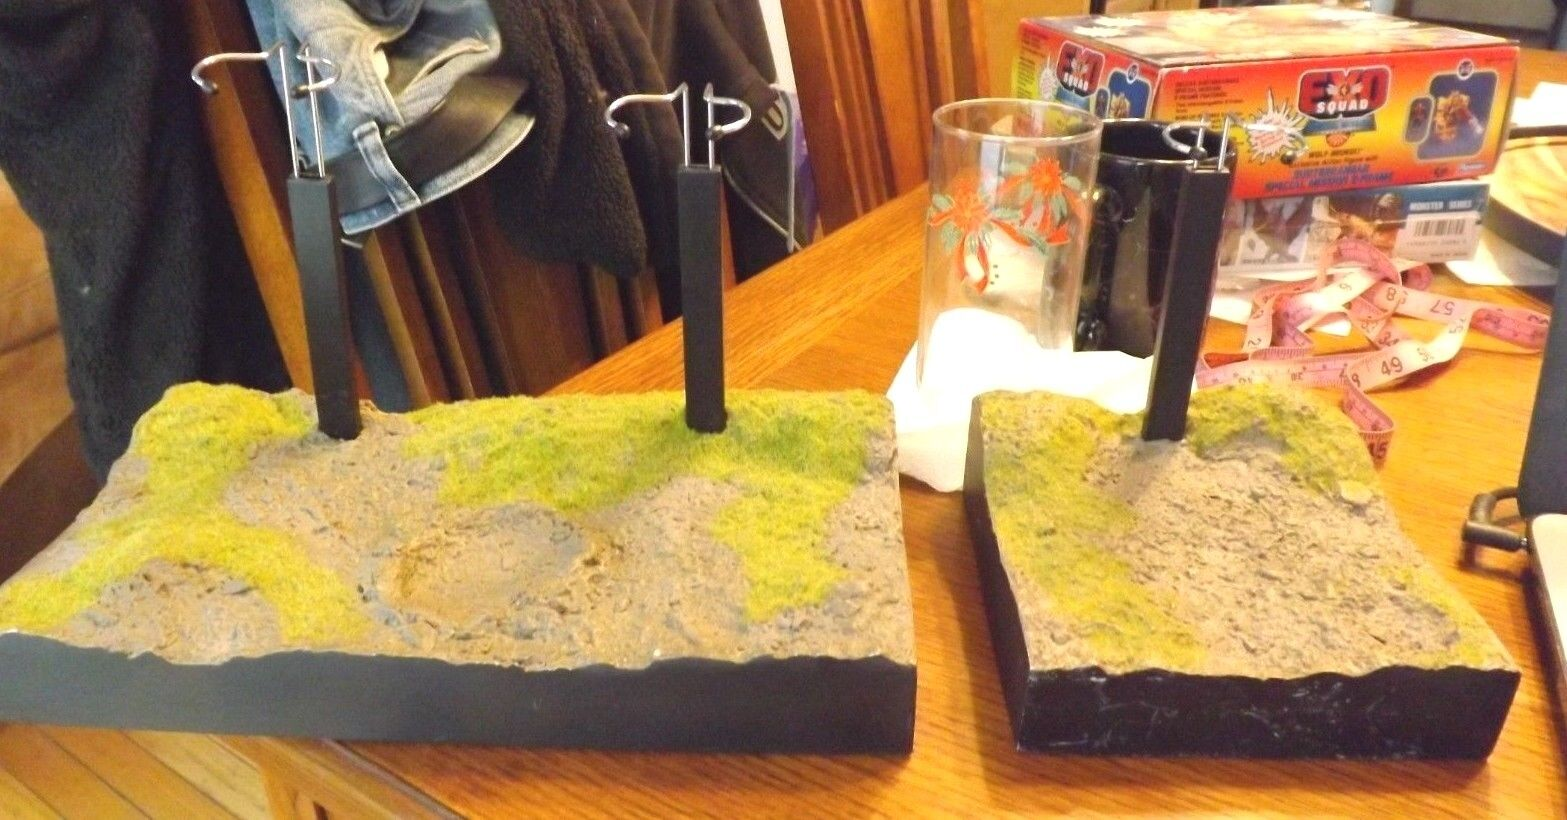 Sideshow Mud Grass Base 1 6 Scale 2-Figure Display 2003